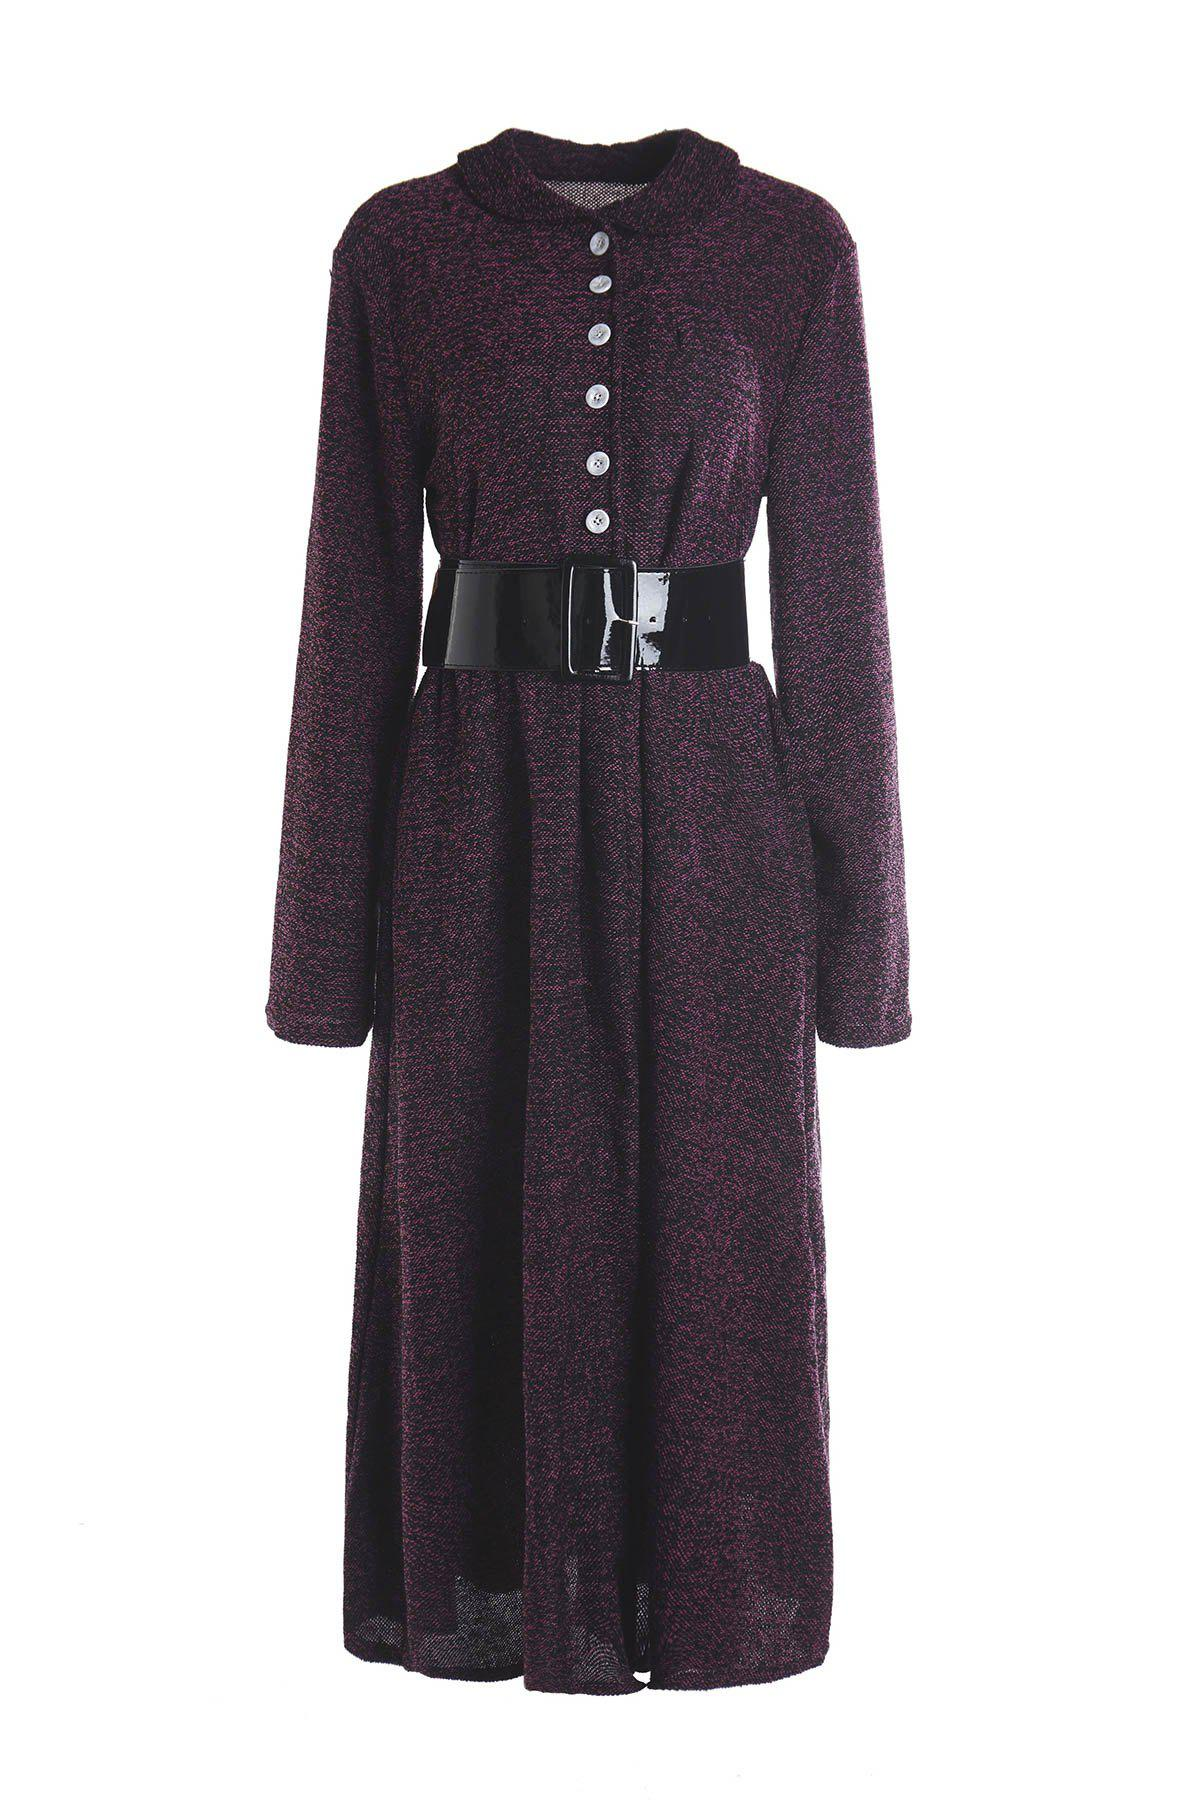 Online Vintage Turn-Down Collar Long Sleeve A-Line Dress For Women